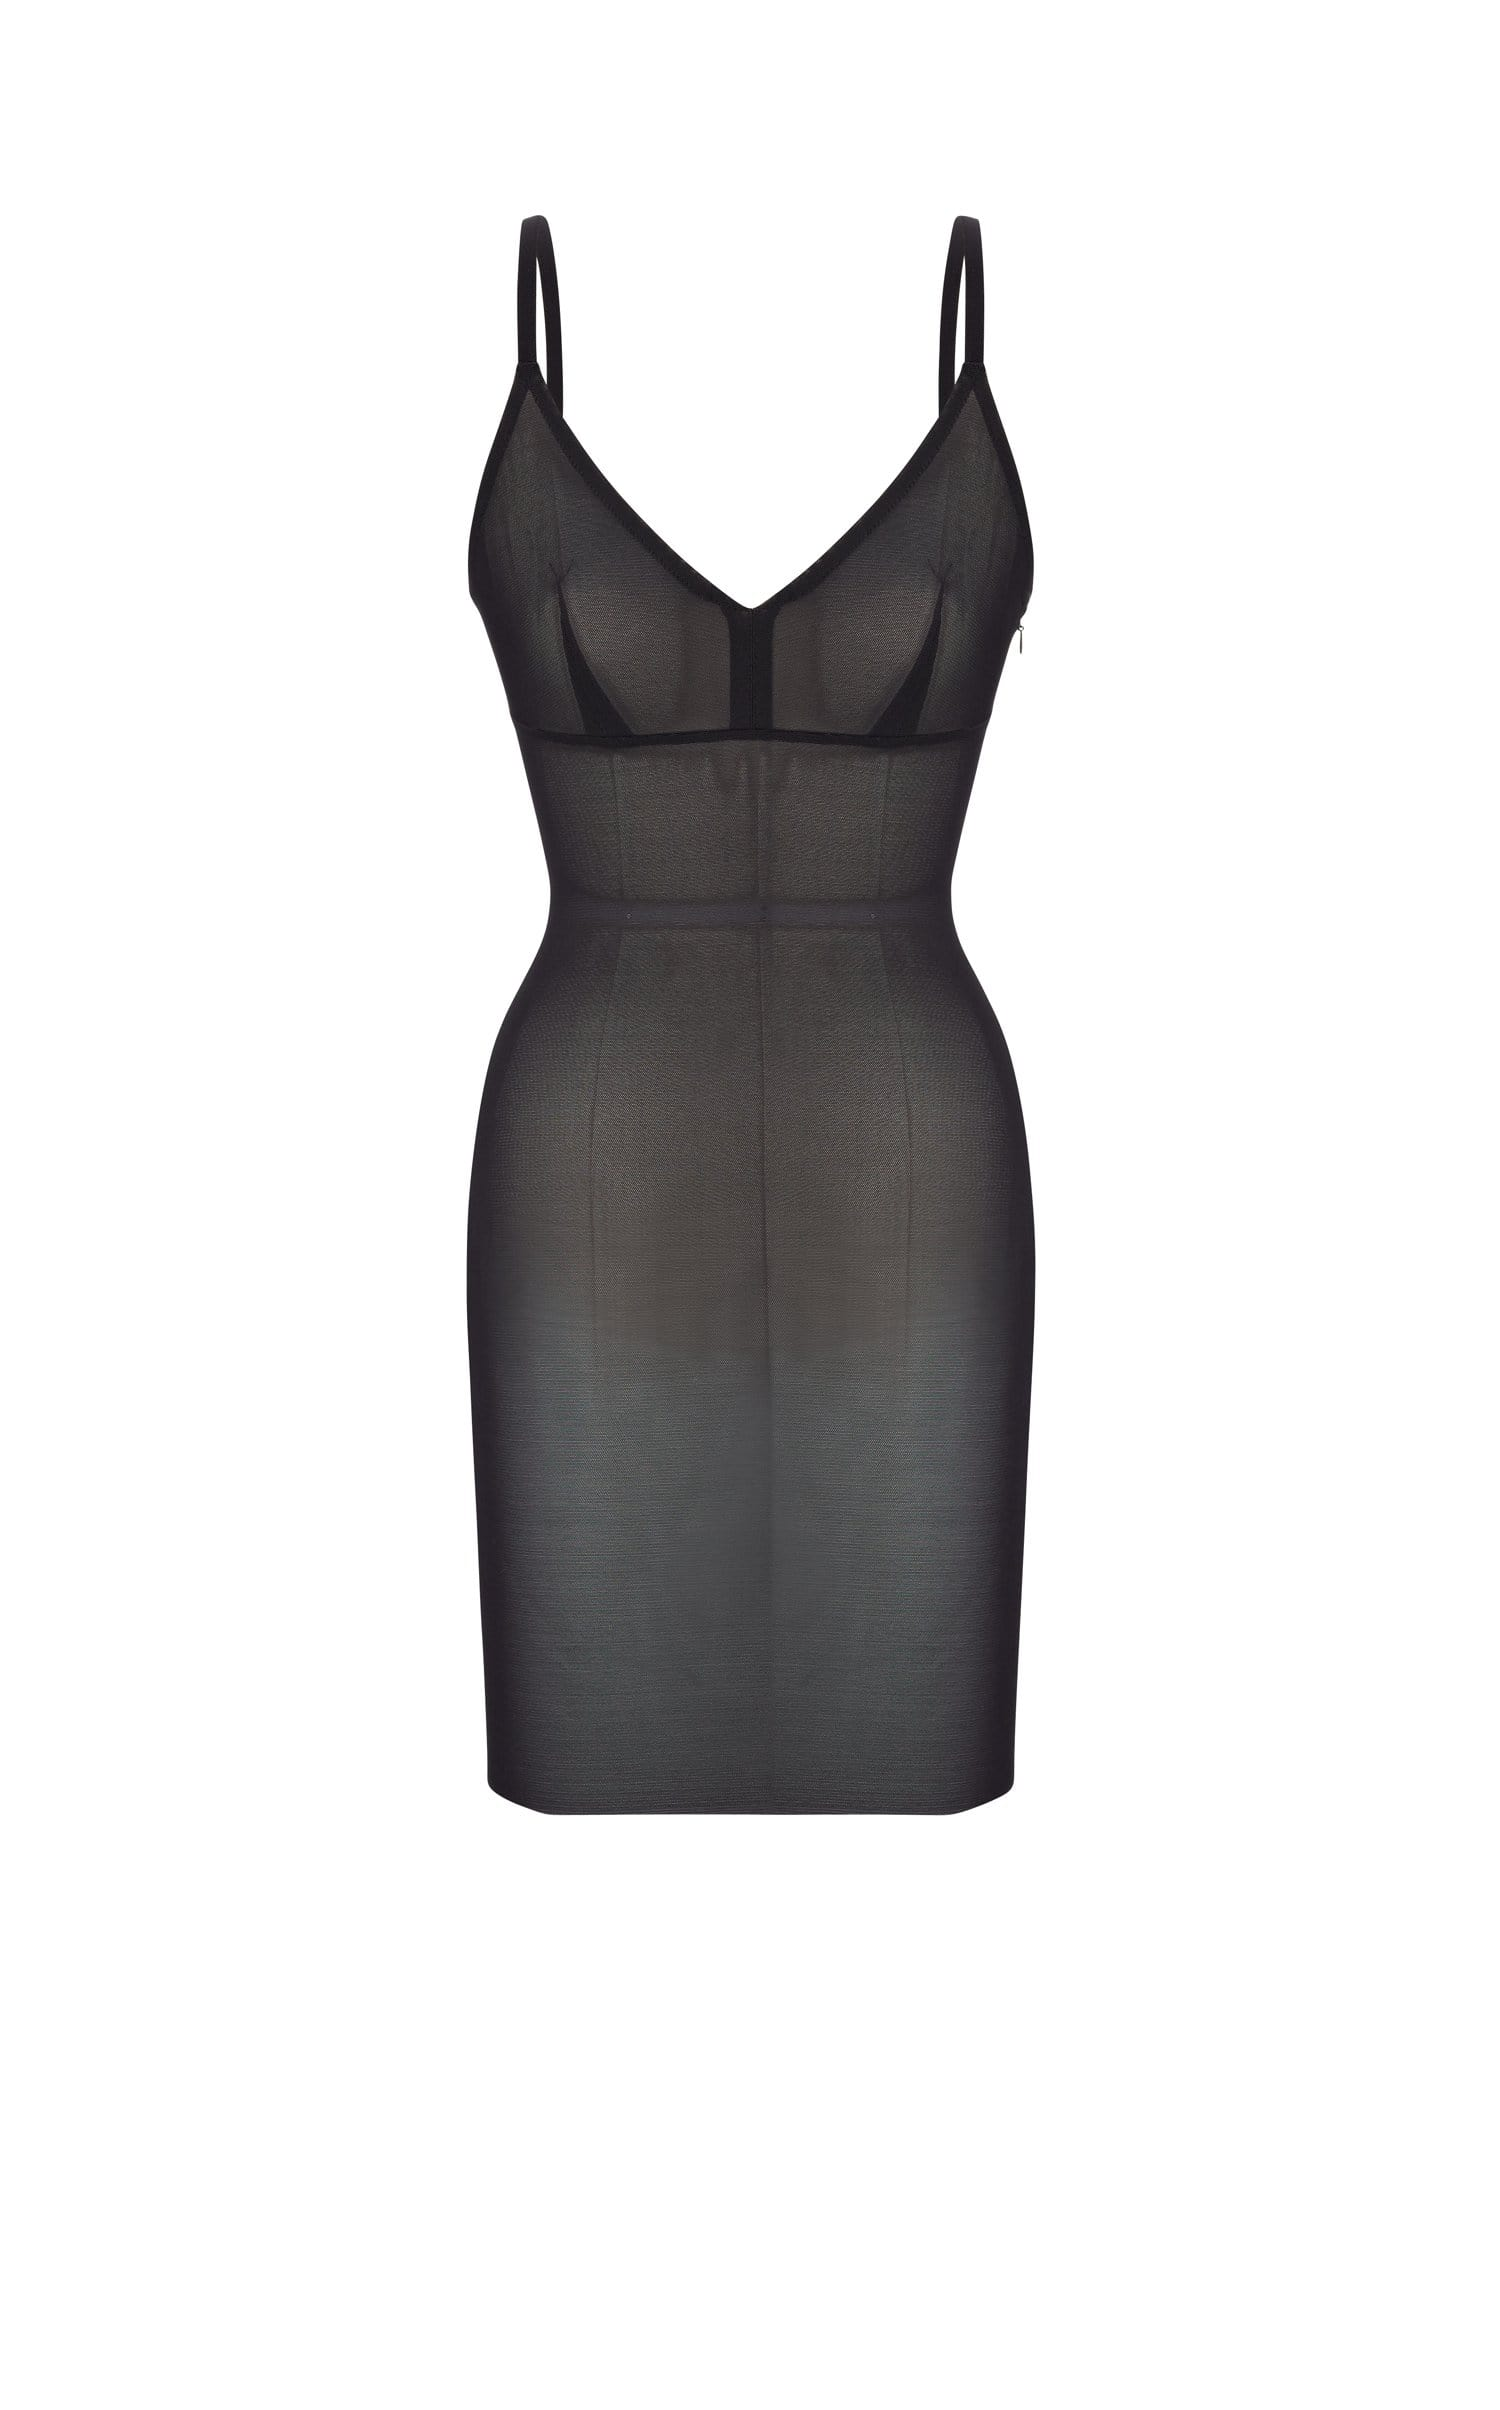 Powermesh Mini Dress In Black from Roland Mouret